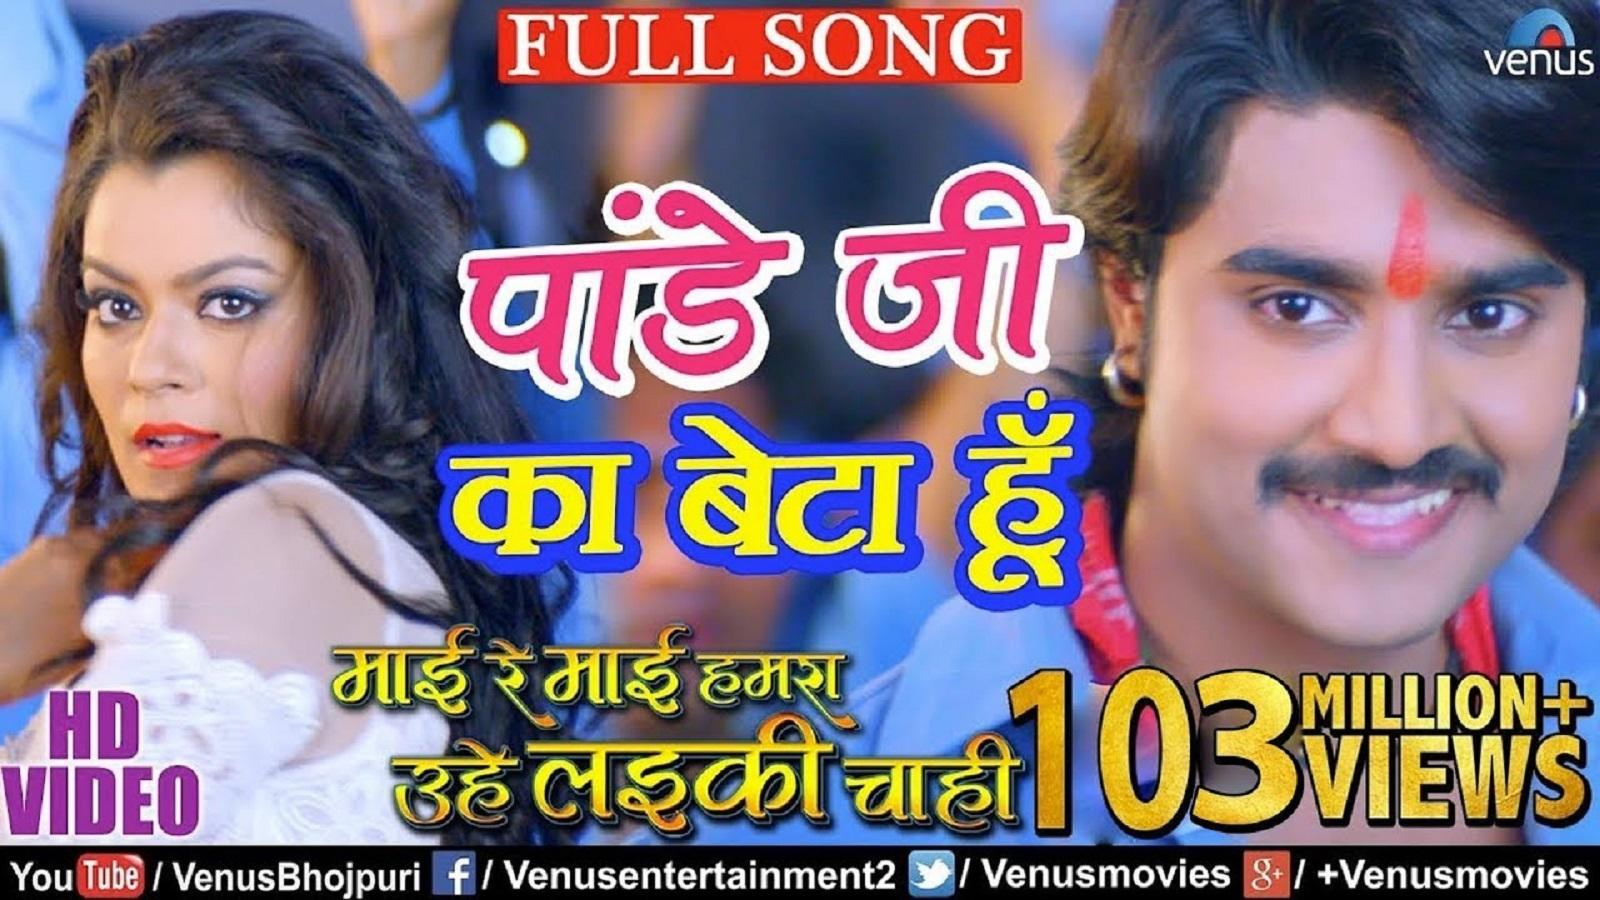 Watch: Pradeep Panday and Nidhi Jha's hit Bhojpuri song 'Pandeyji Ka Beta  Hoon'